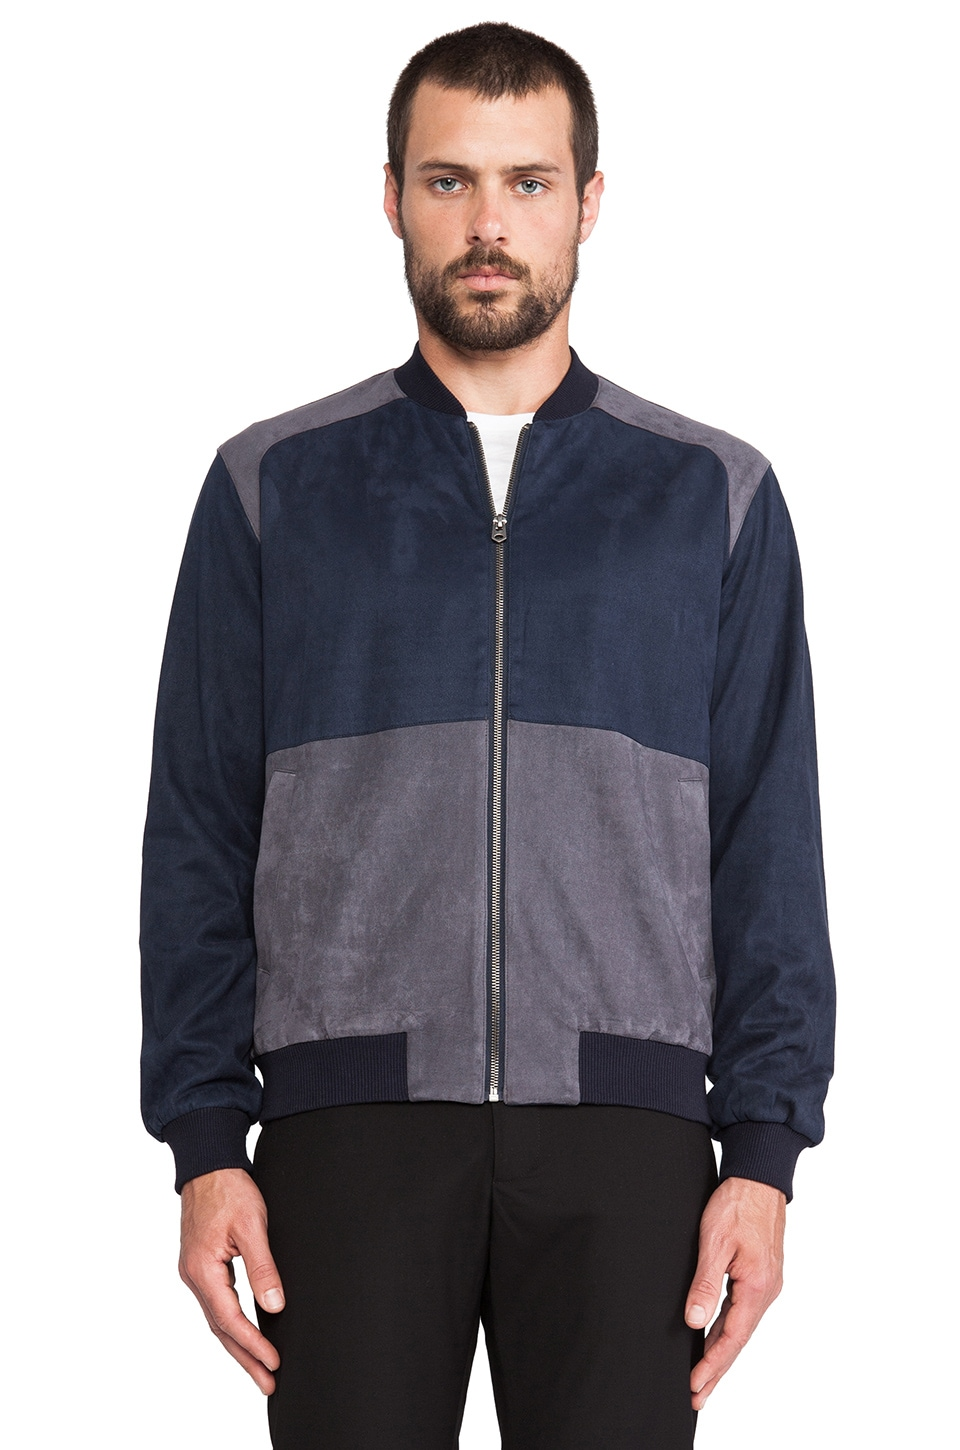 Shades of Grey by Micah Cohen Colorblock Faux Suede Bomber in Navy/ Grey